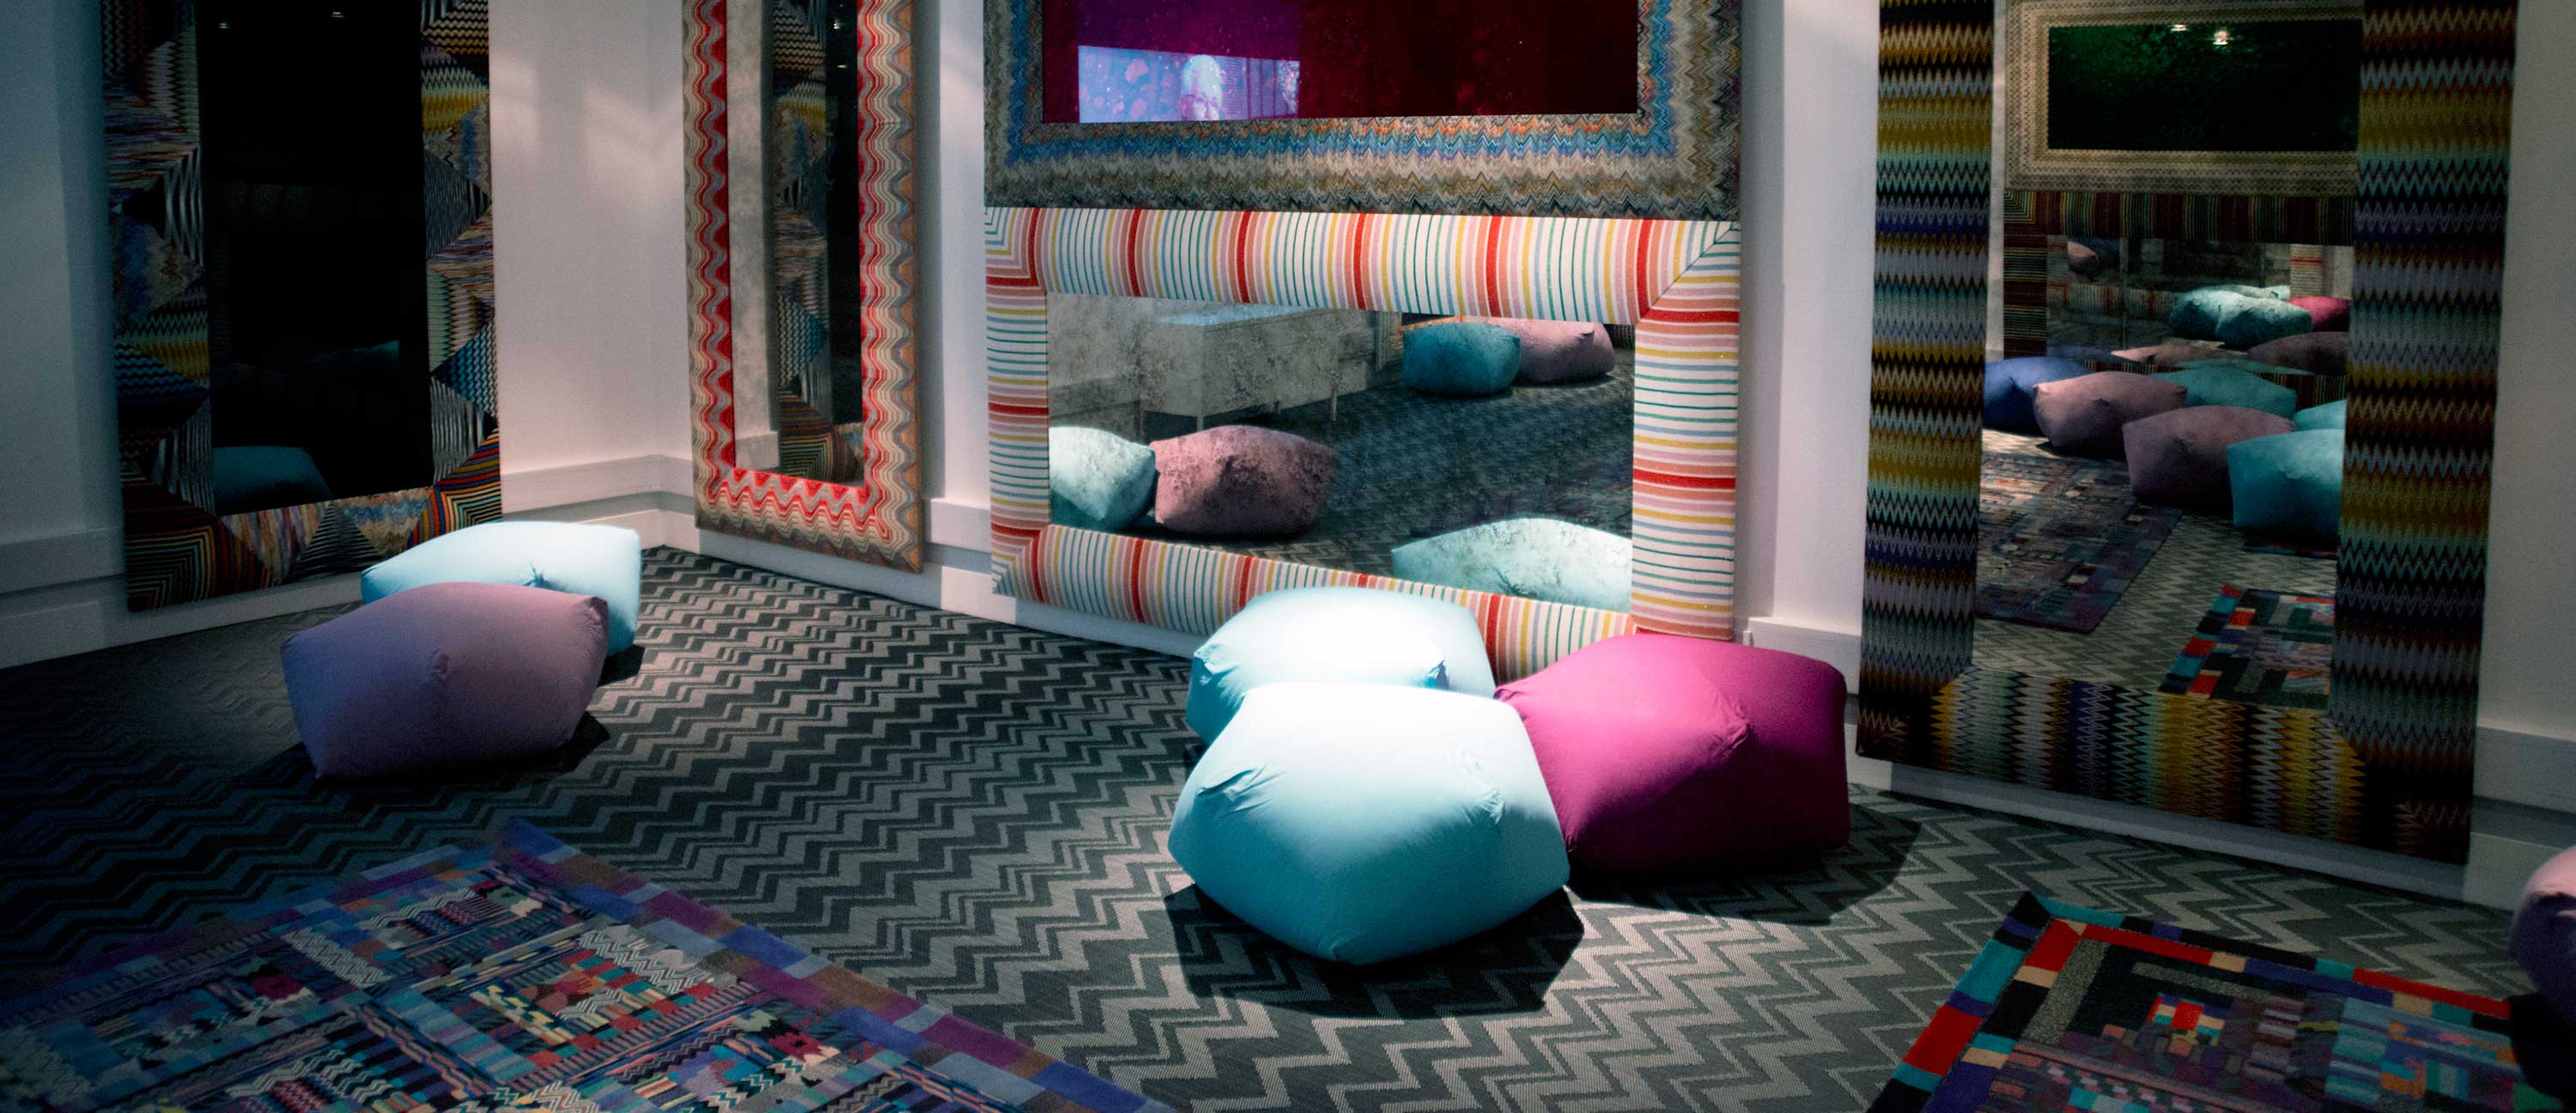 Zigzag patterned Bolon by Missoni flooring at the London Textile and Fashion Museum